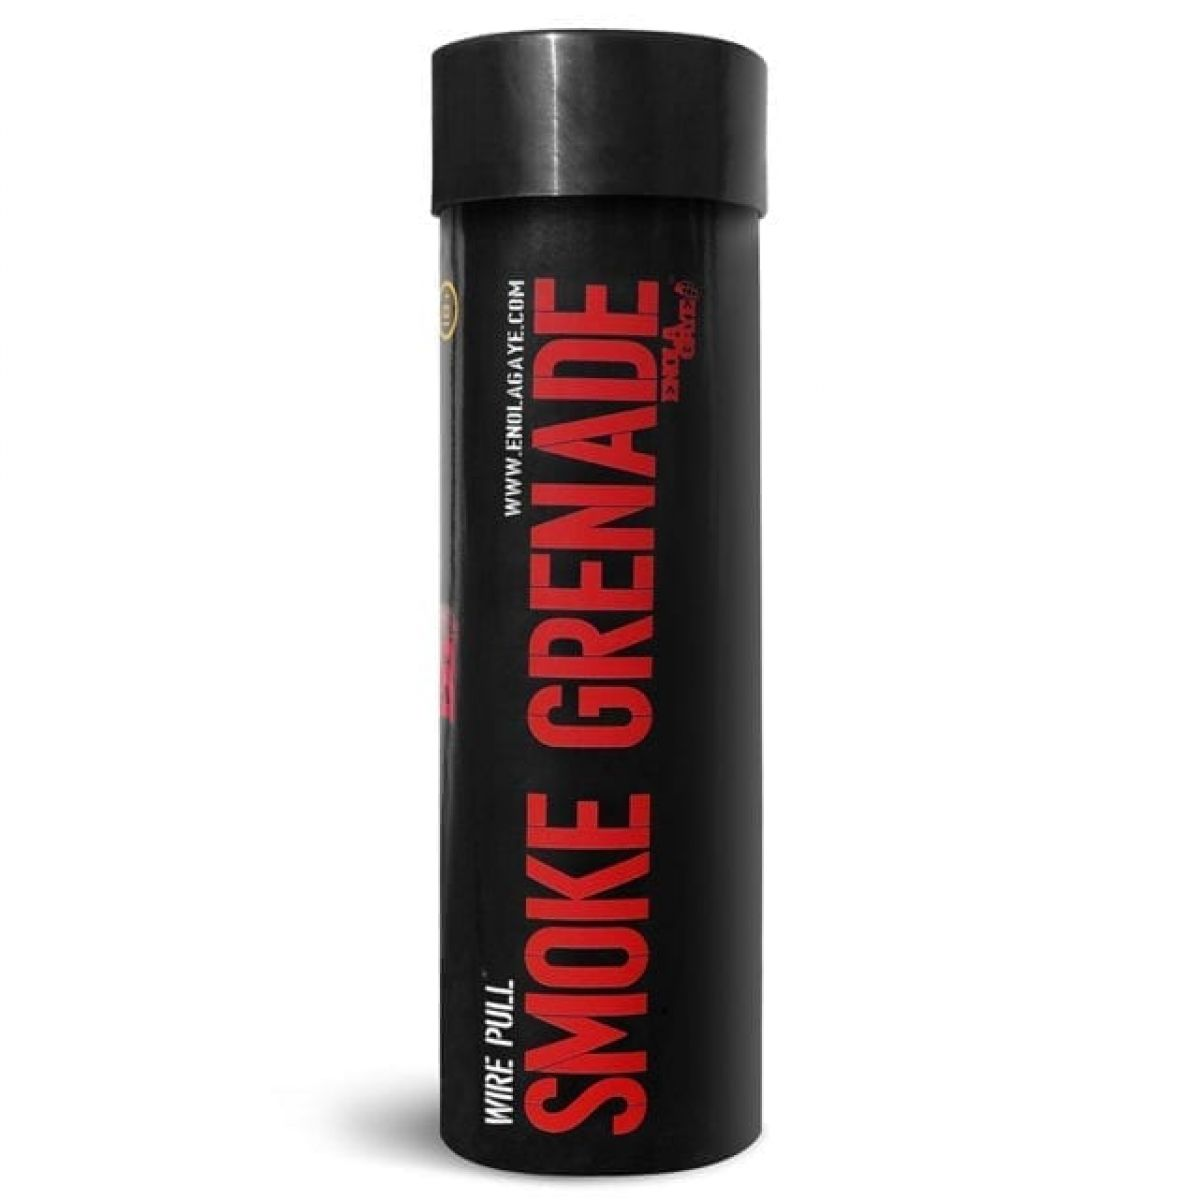 WP40 RED Smoke Grenade wire pull 120 seconds